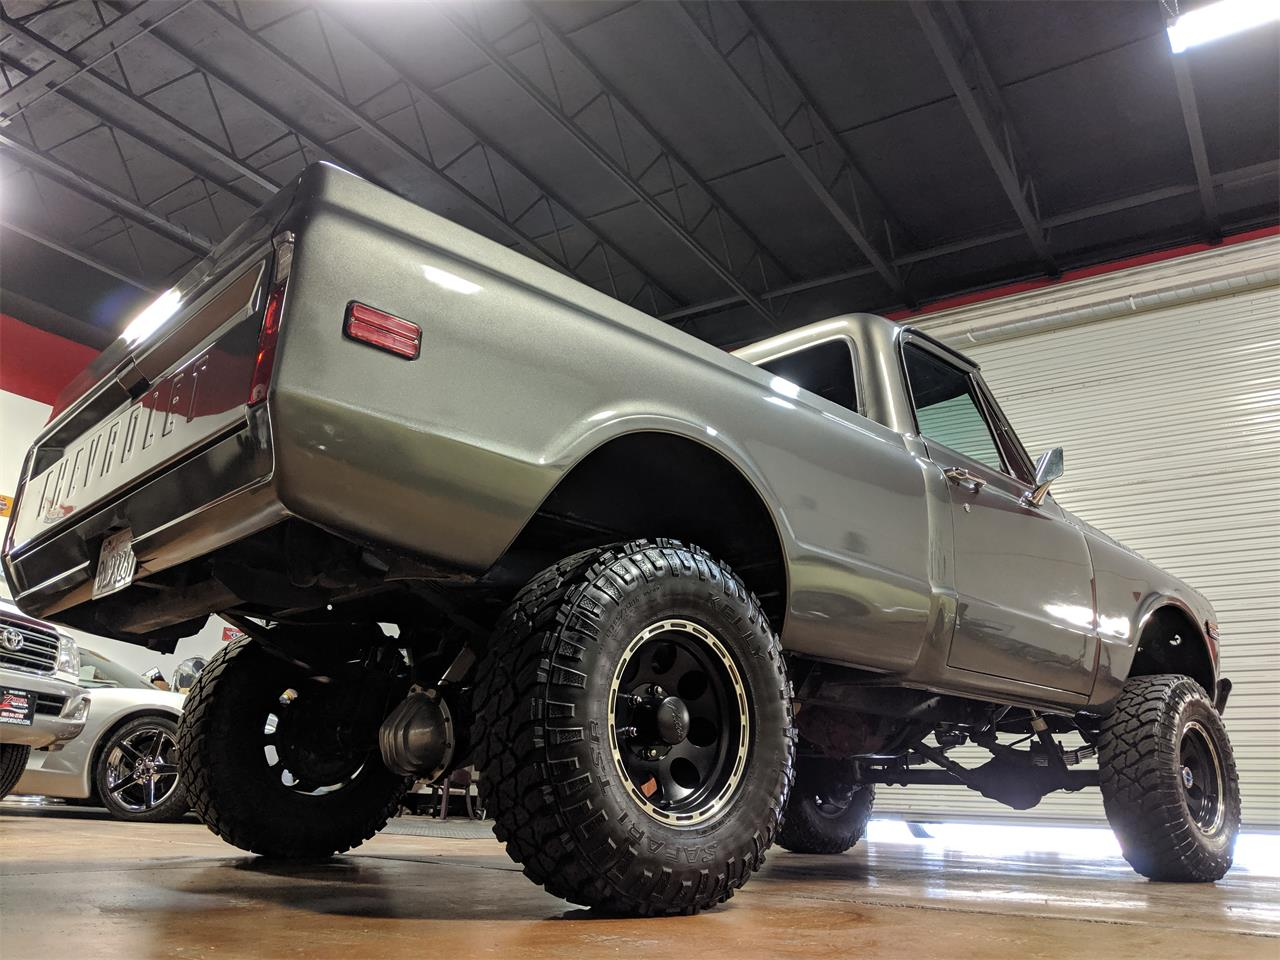 Large Picture of Classic 1972 K-10 located in San Luis Obispo California - $34,500.00 Offered by a Private Seller - Q6TS